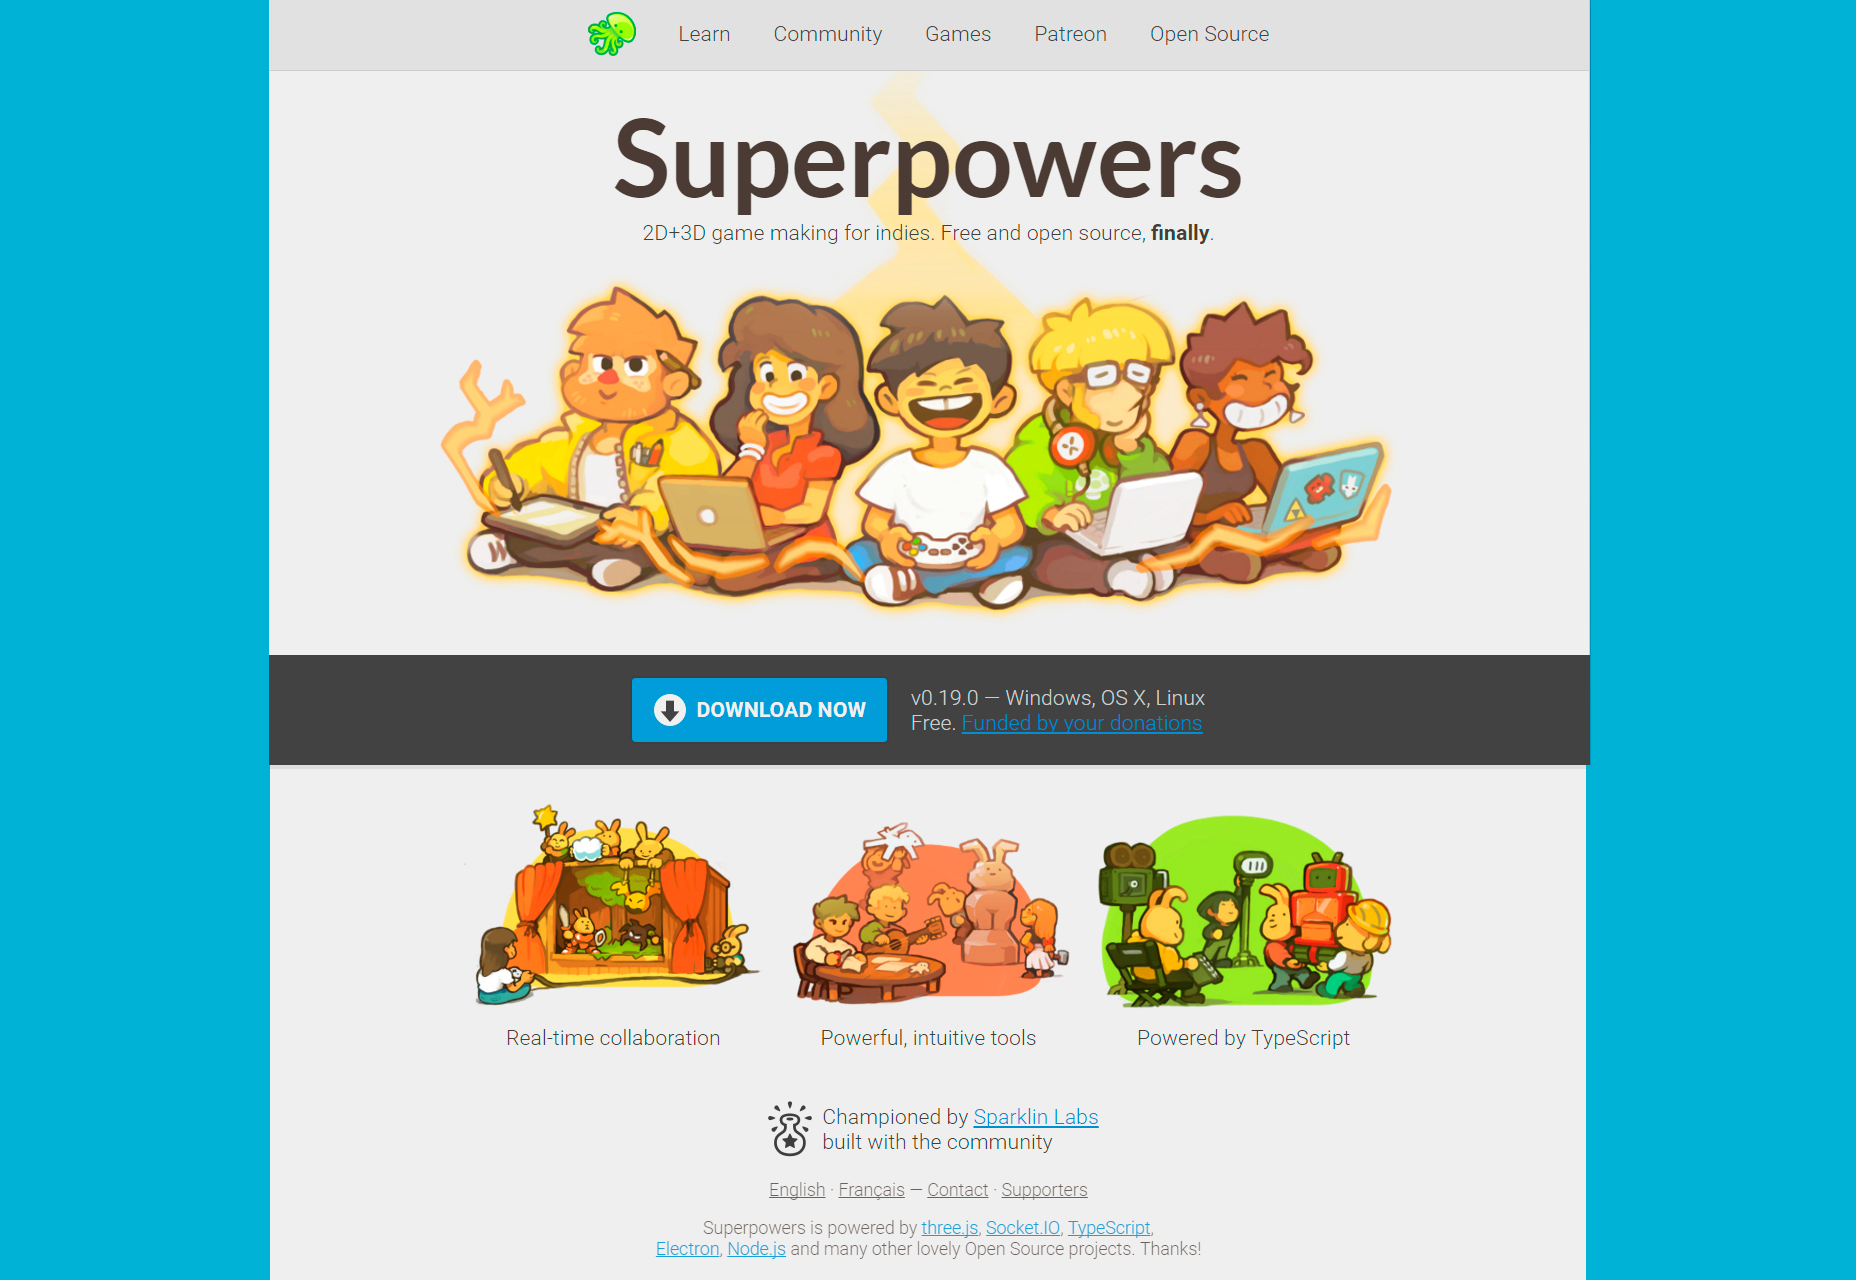 superpowers-2d-3d-open-source-game-making-environment